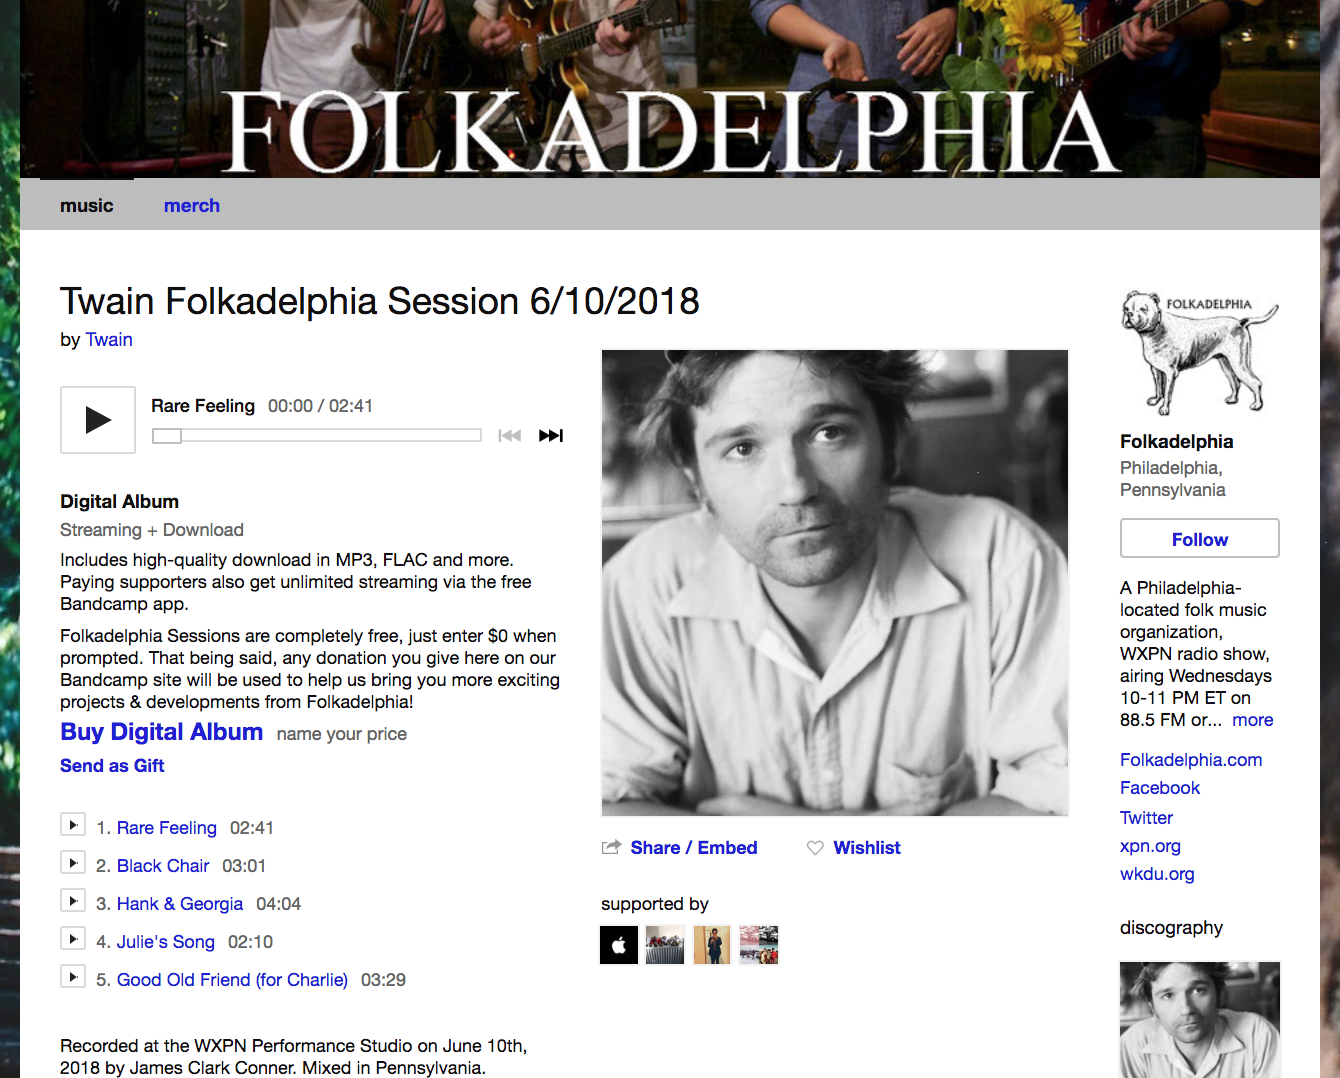 Twain Folkadelphia session is now up! - This summer Mat Davidson recorded a solo Twain session at the WXPN studios in Philadelphia for Folkadelphia. The session aired live this week and is archived on their website & Bandcamp. Head here to listen to rousing renditions of four songs from last year's Rare Feeling, as well as a new song not available to stream anywhere else.